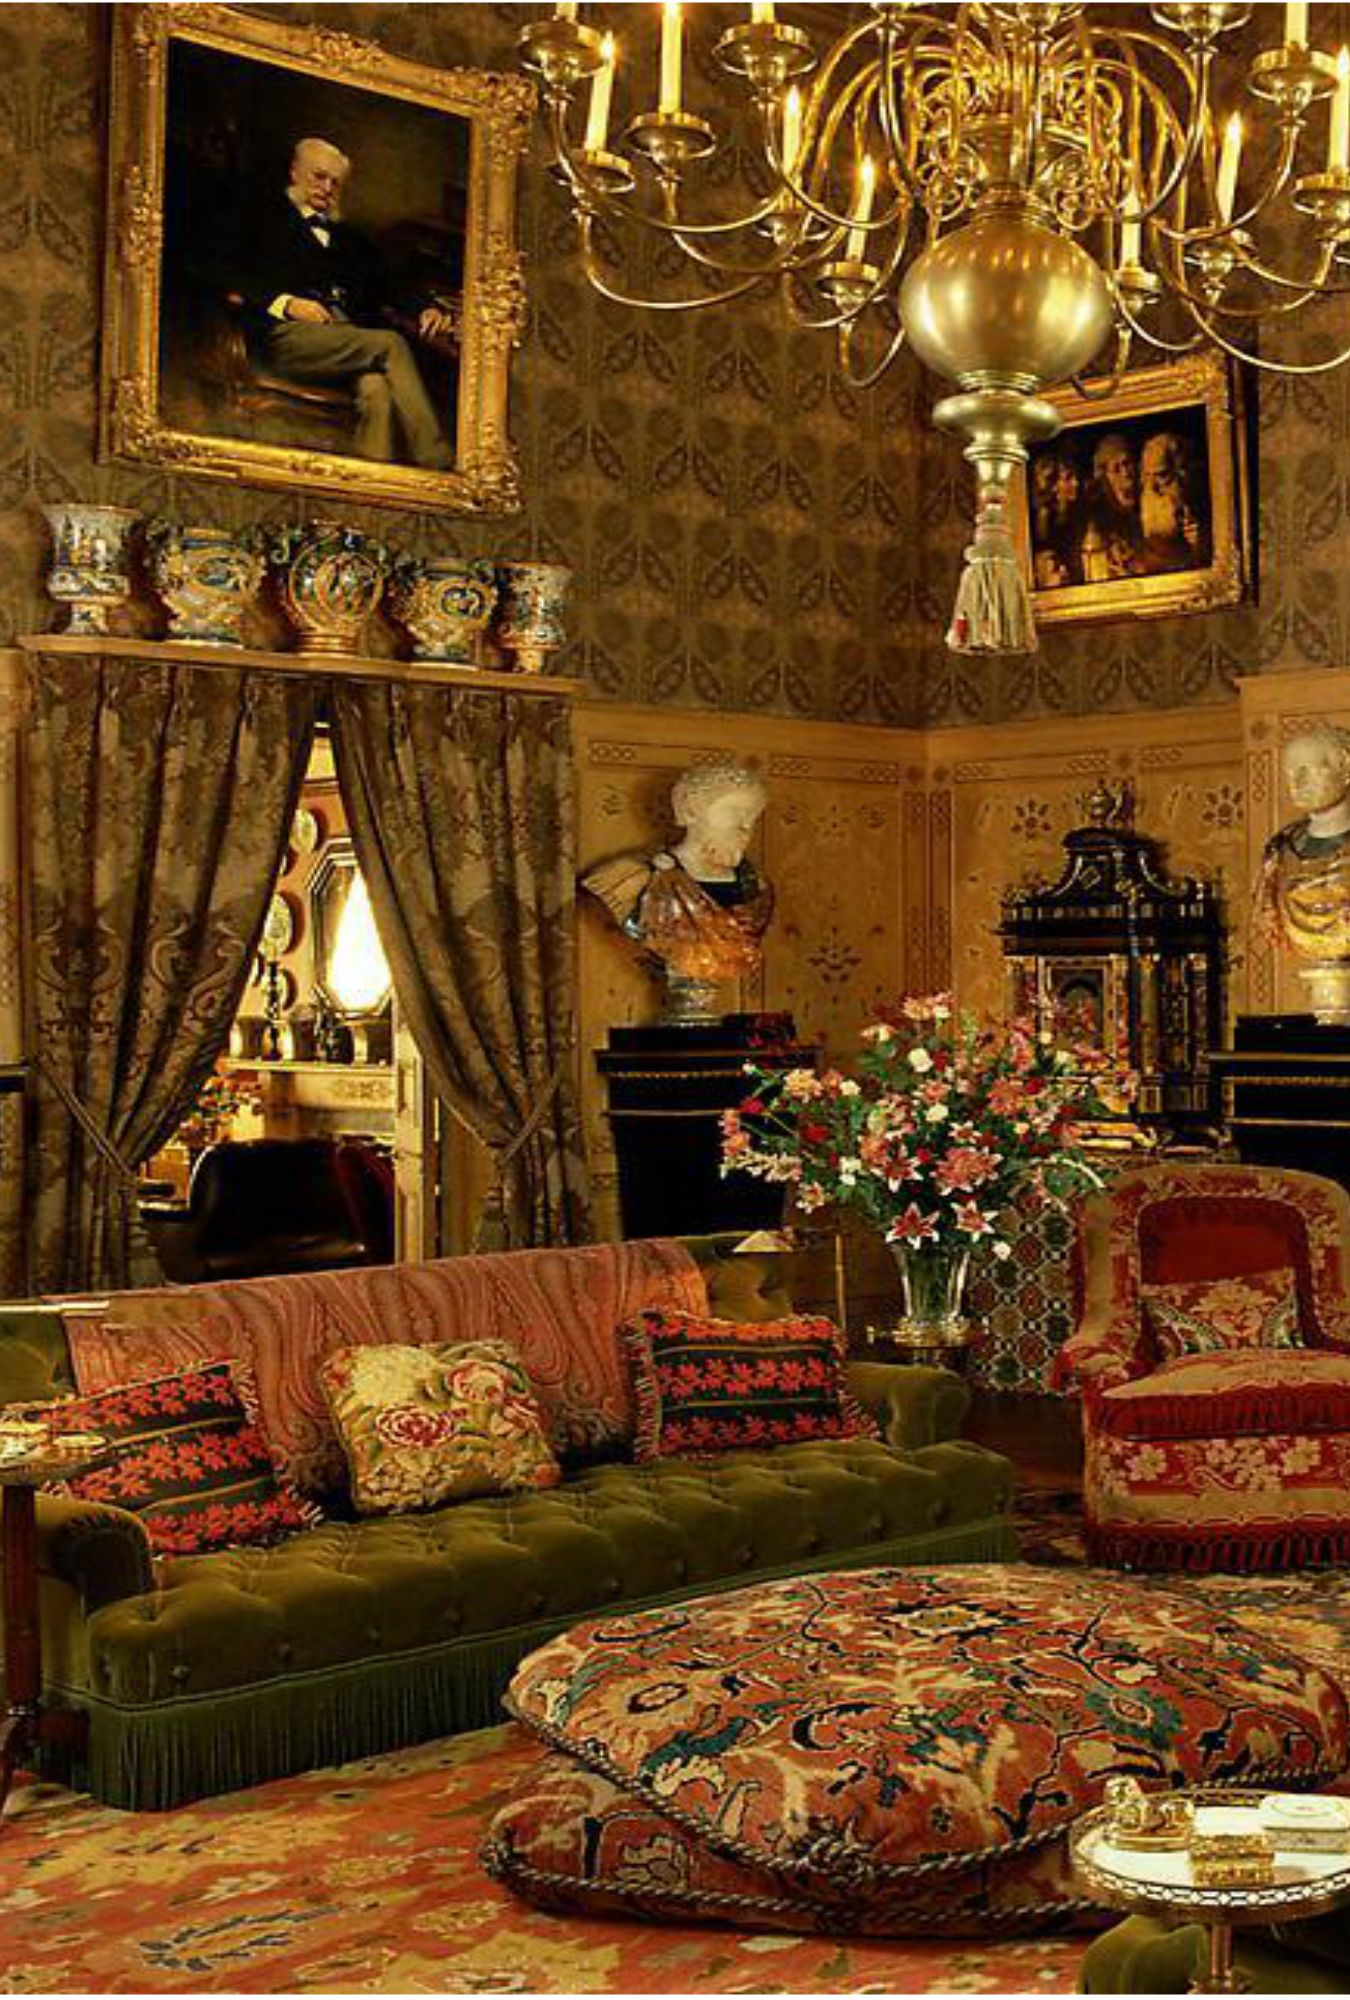 Nureyev's Paris apartment